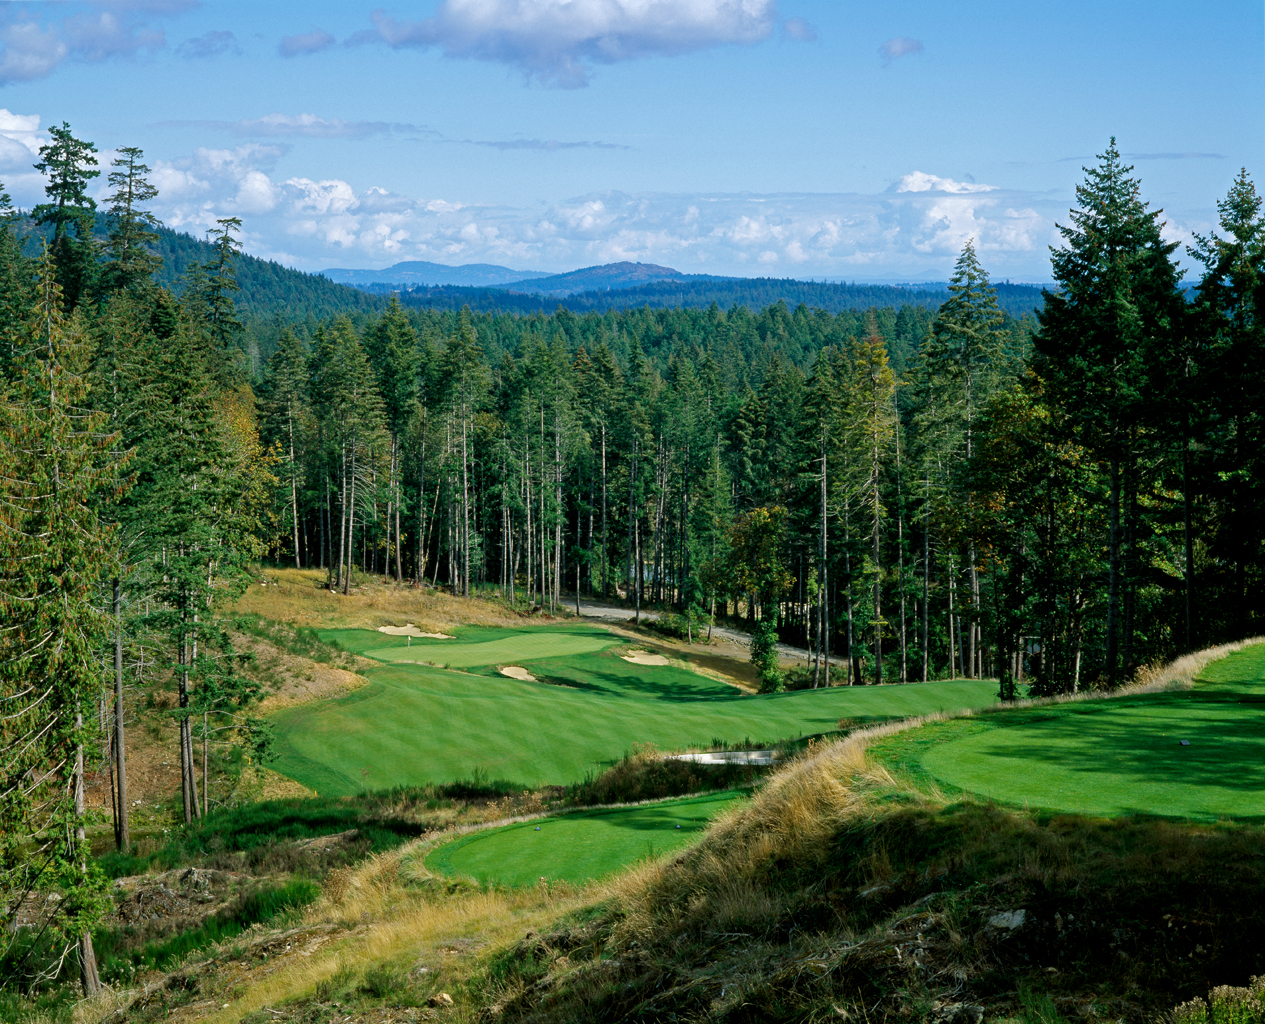 Golf canada victoria golf courses valley course bear for Adagio salon golden valley